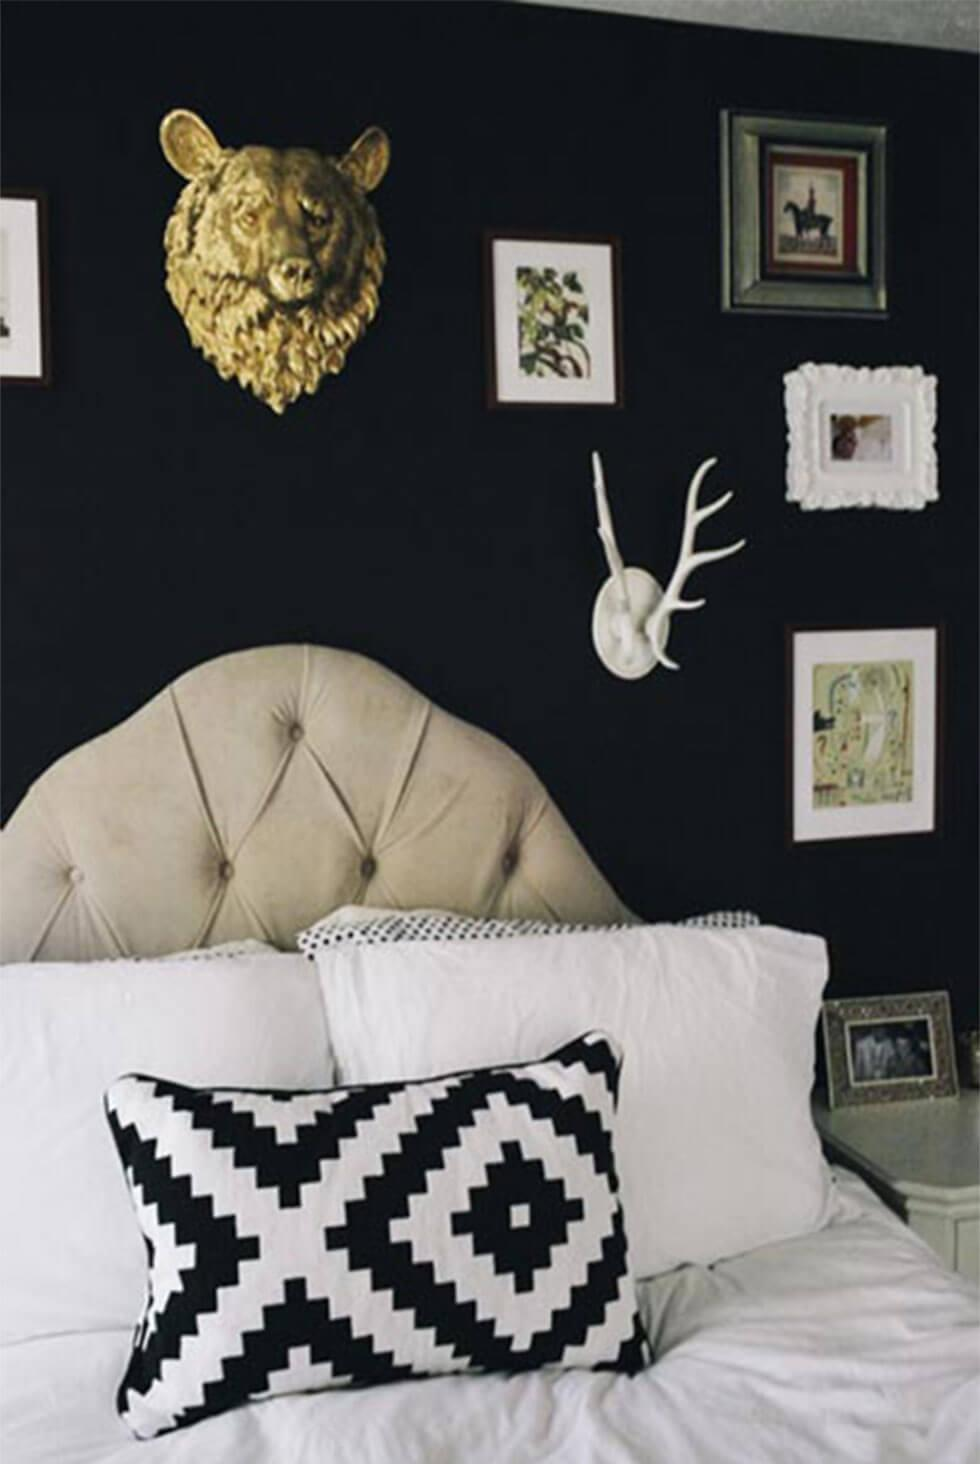 Quirky black bedroom with art and wall decor, printed cushion and upholstered headboard